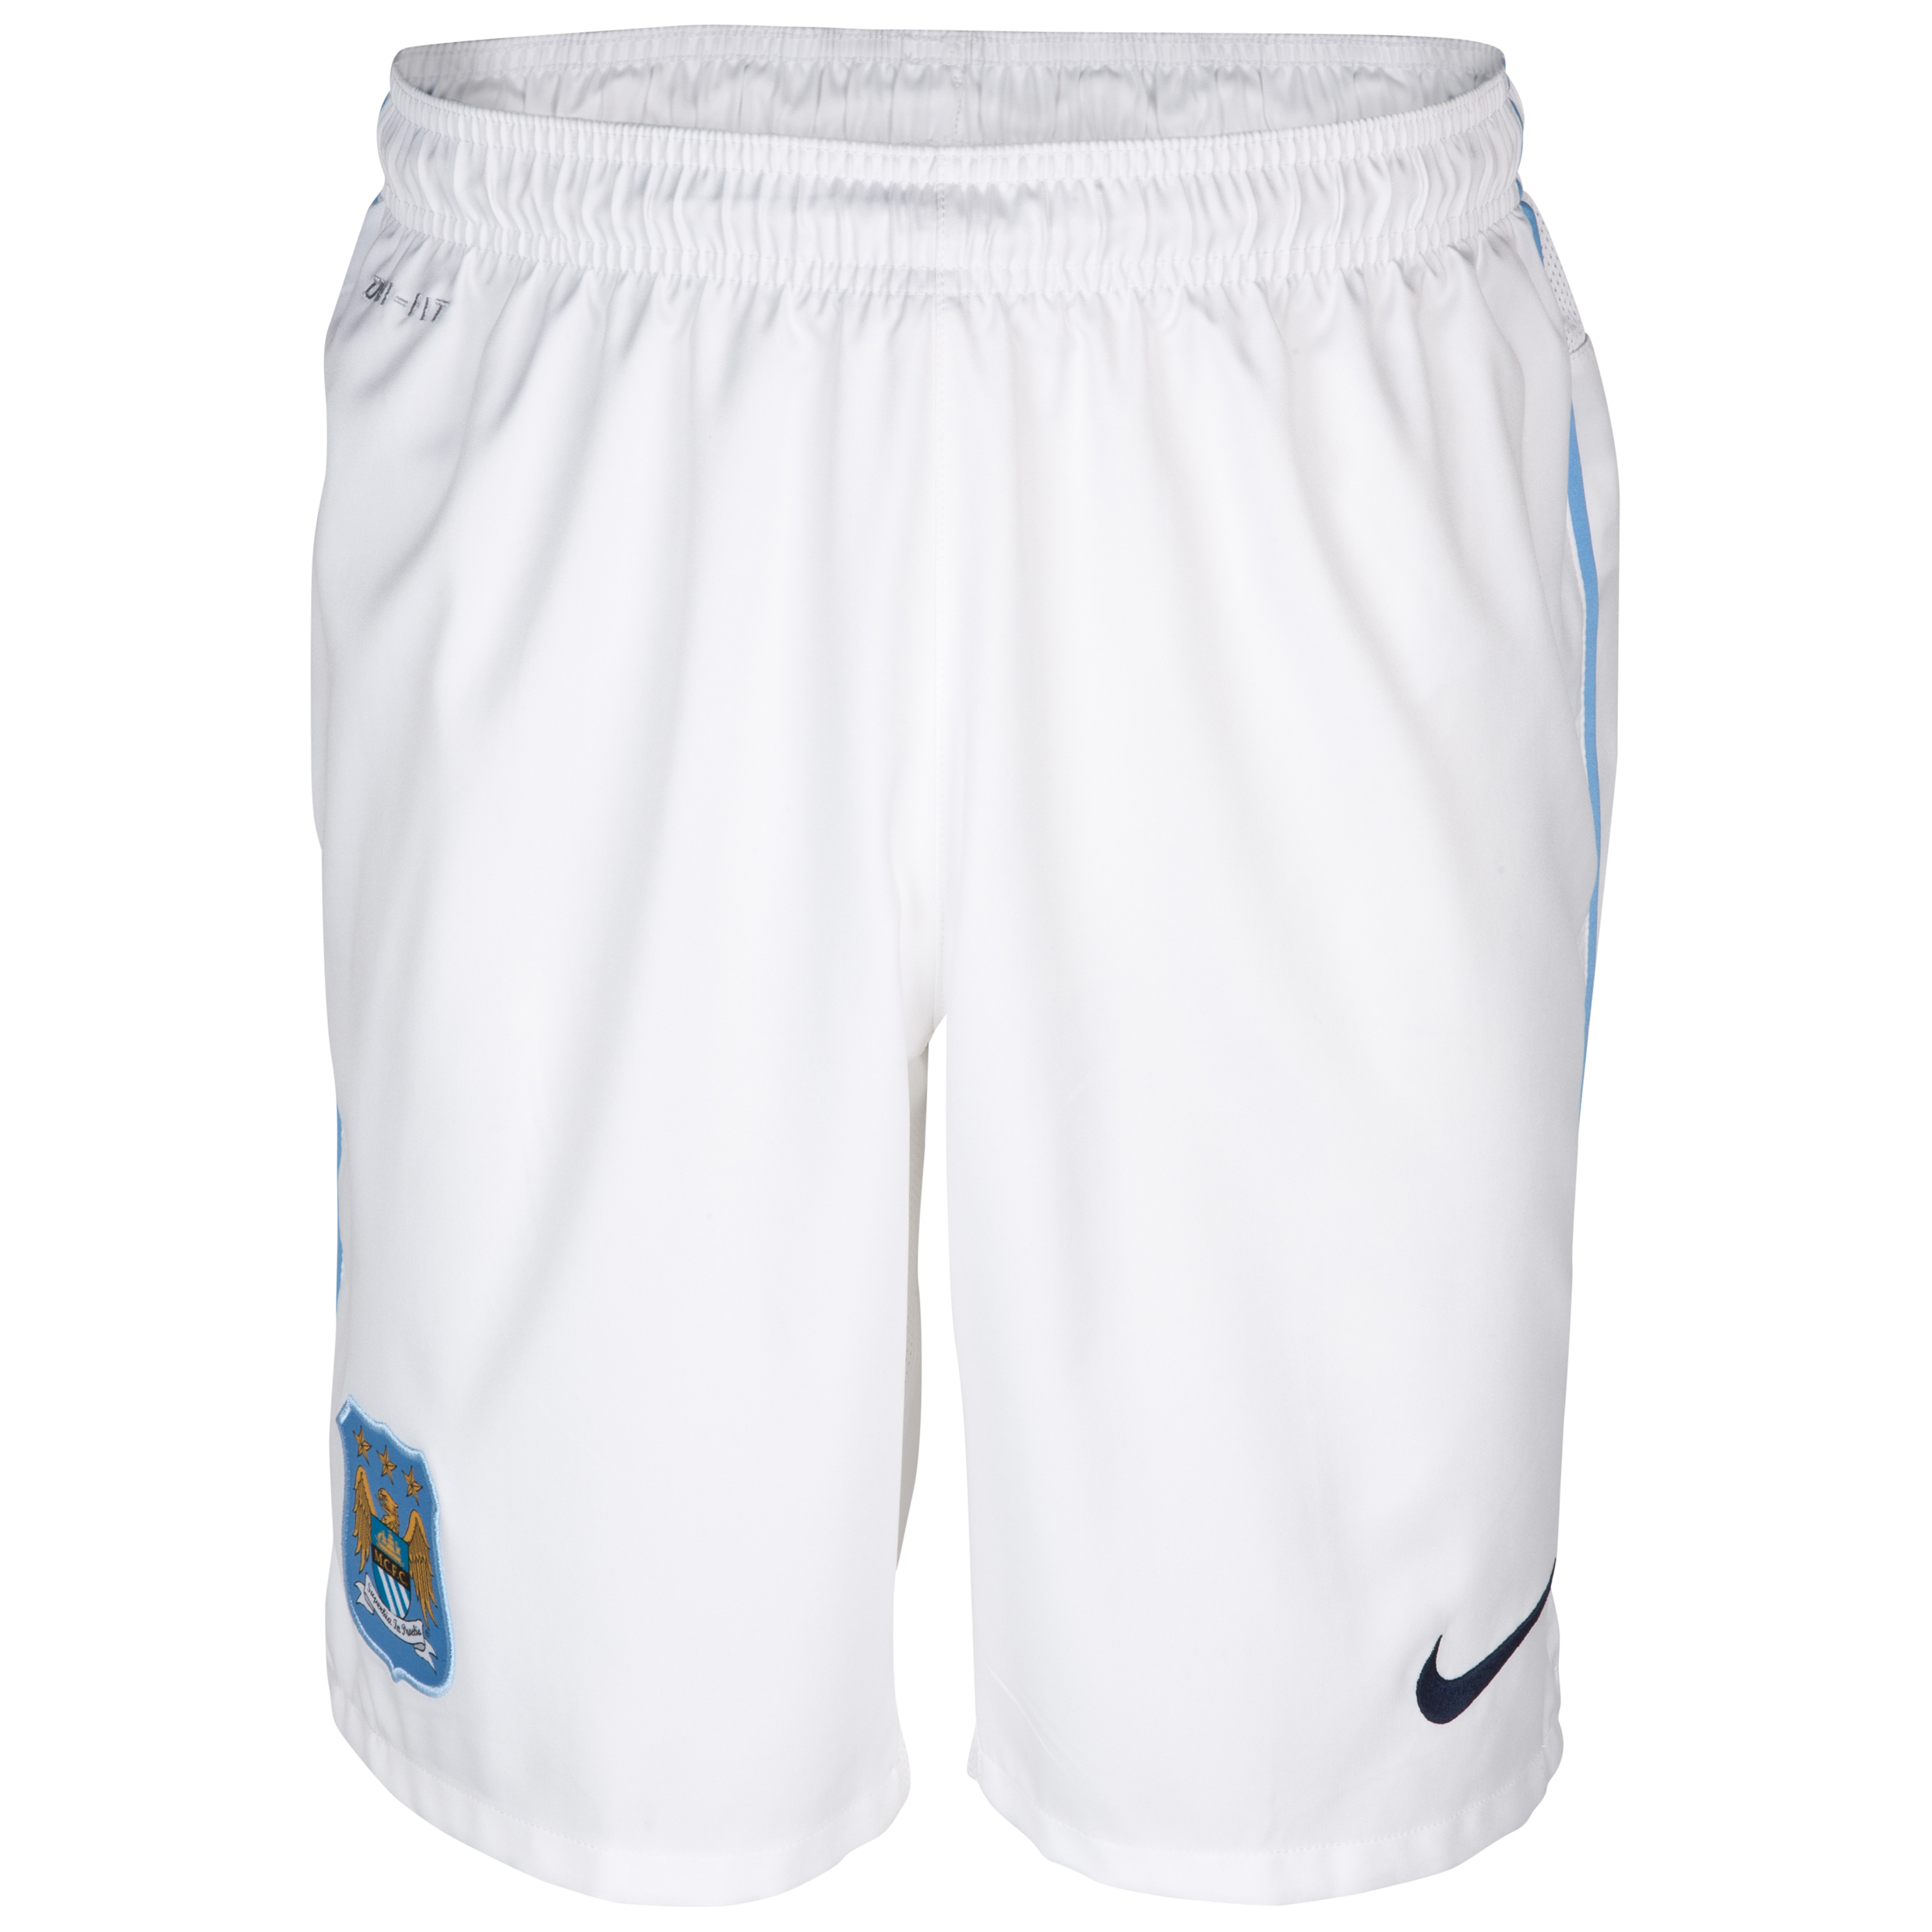 Manchester City Home Short 2013/14 - Junior